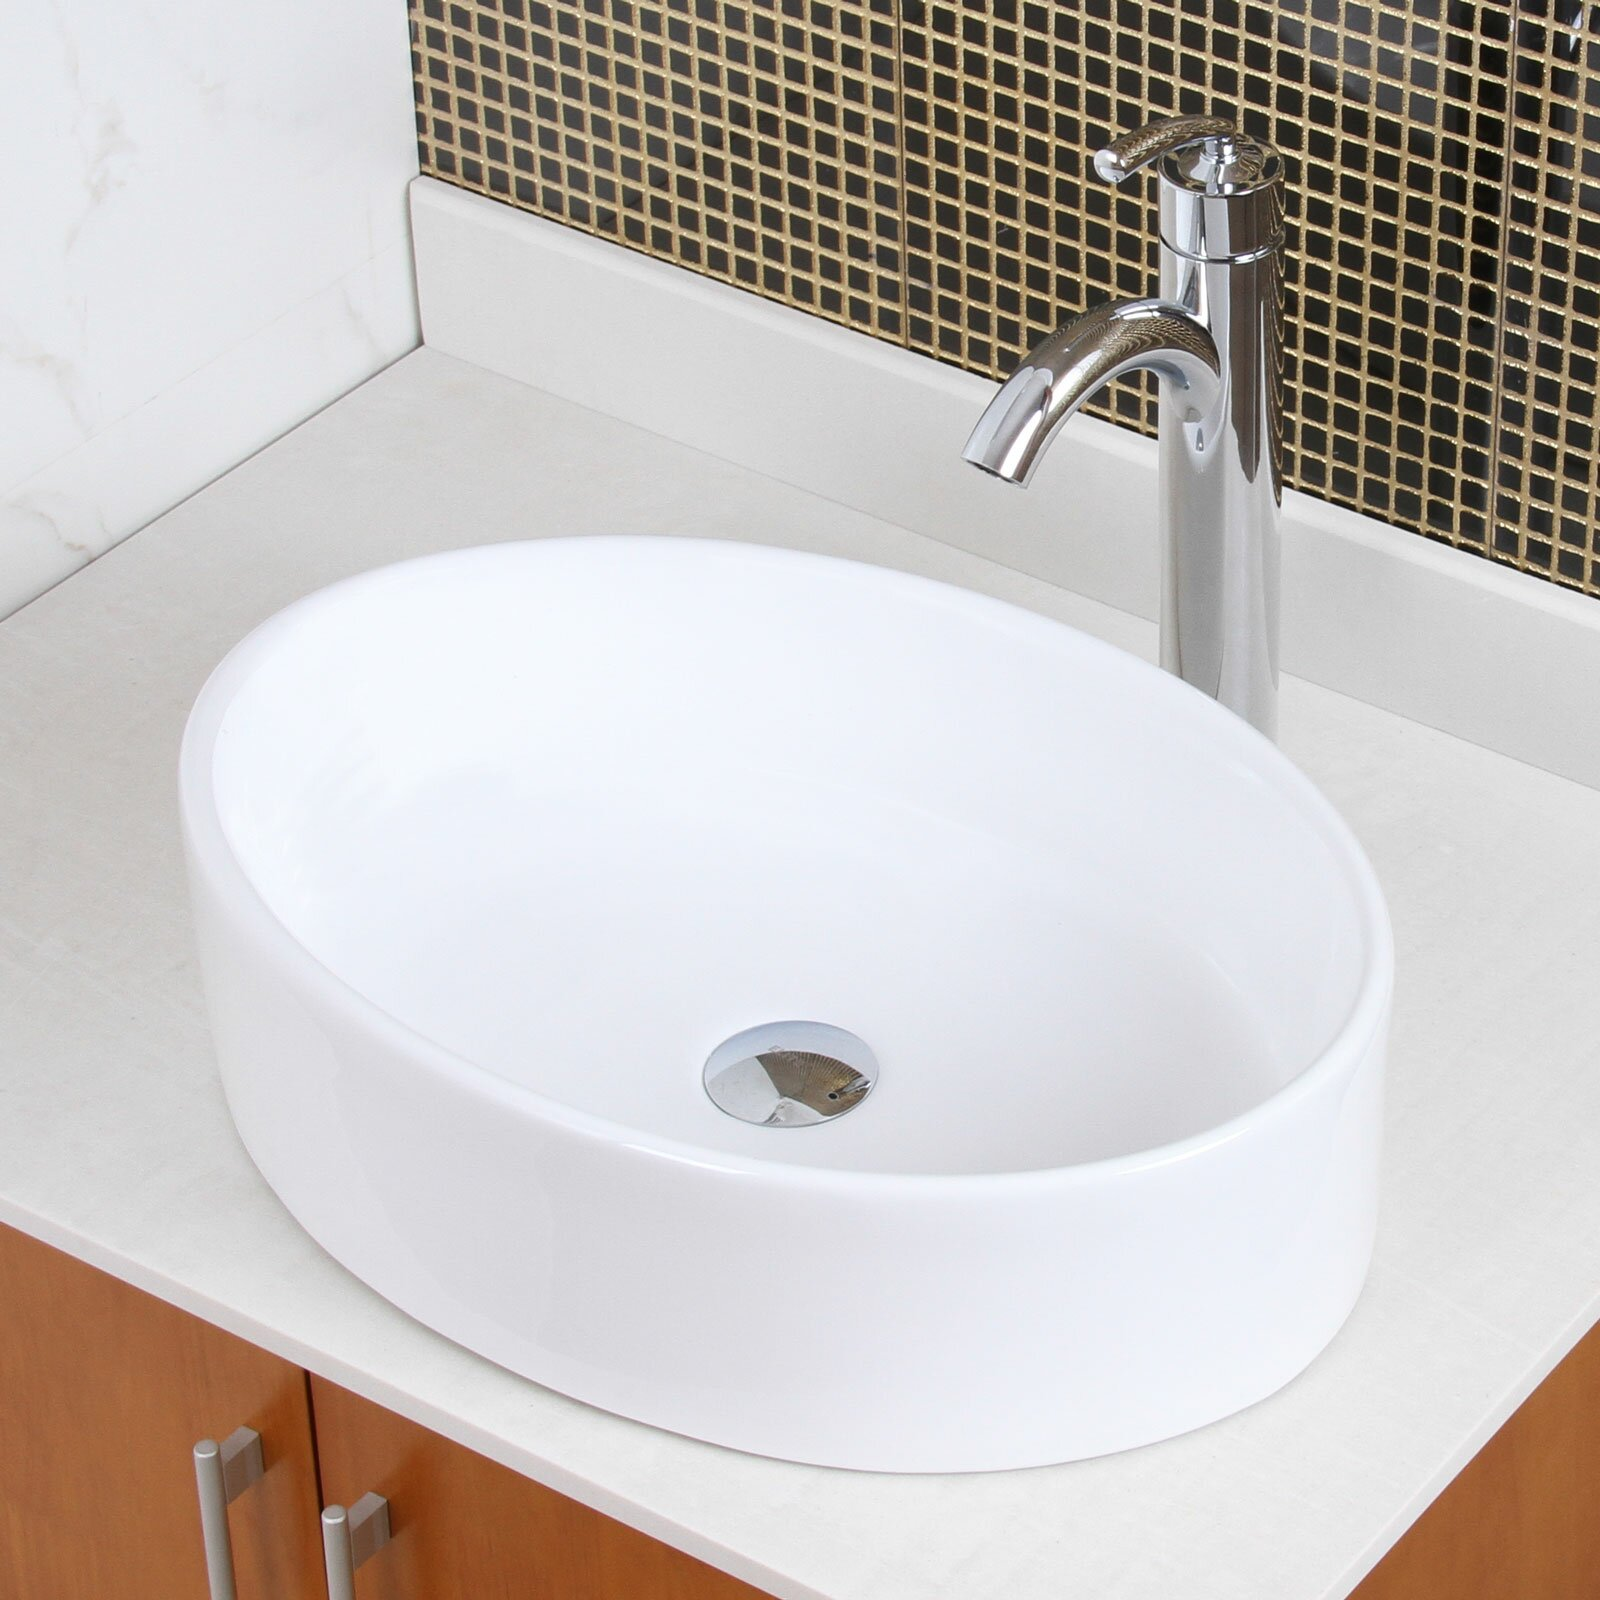 Elite Bathroom Sinks : Elite Ceramic Elliptical Bathroom Sink & Reviews Wayfair Supply